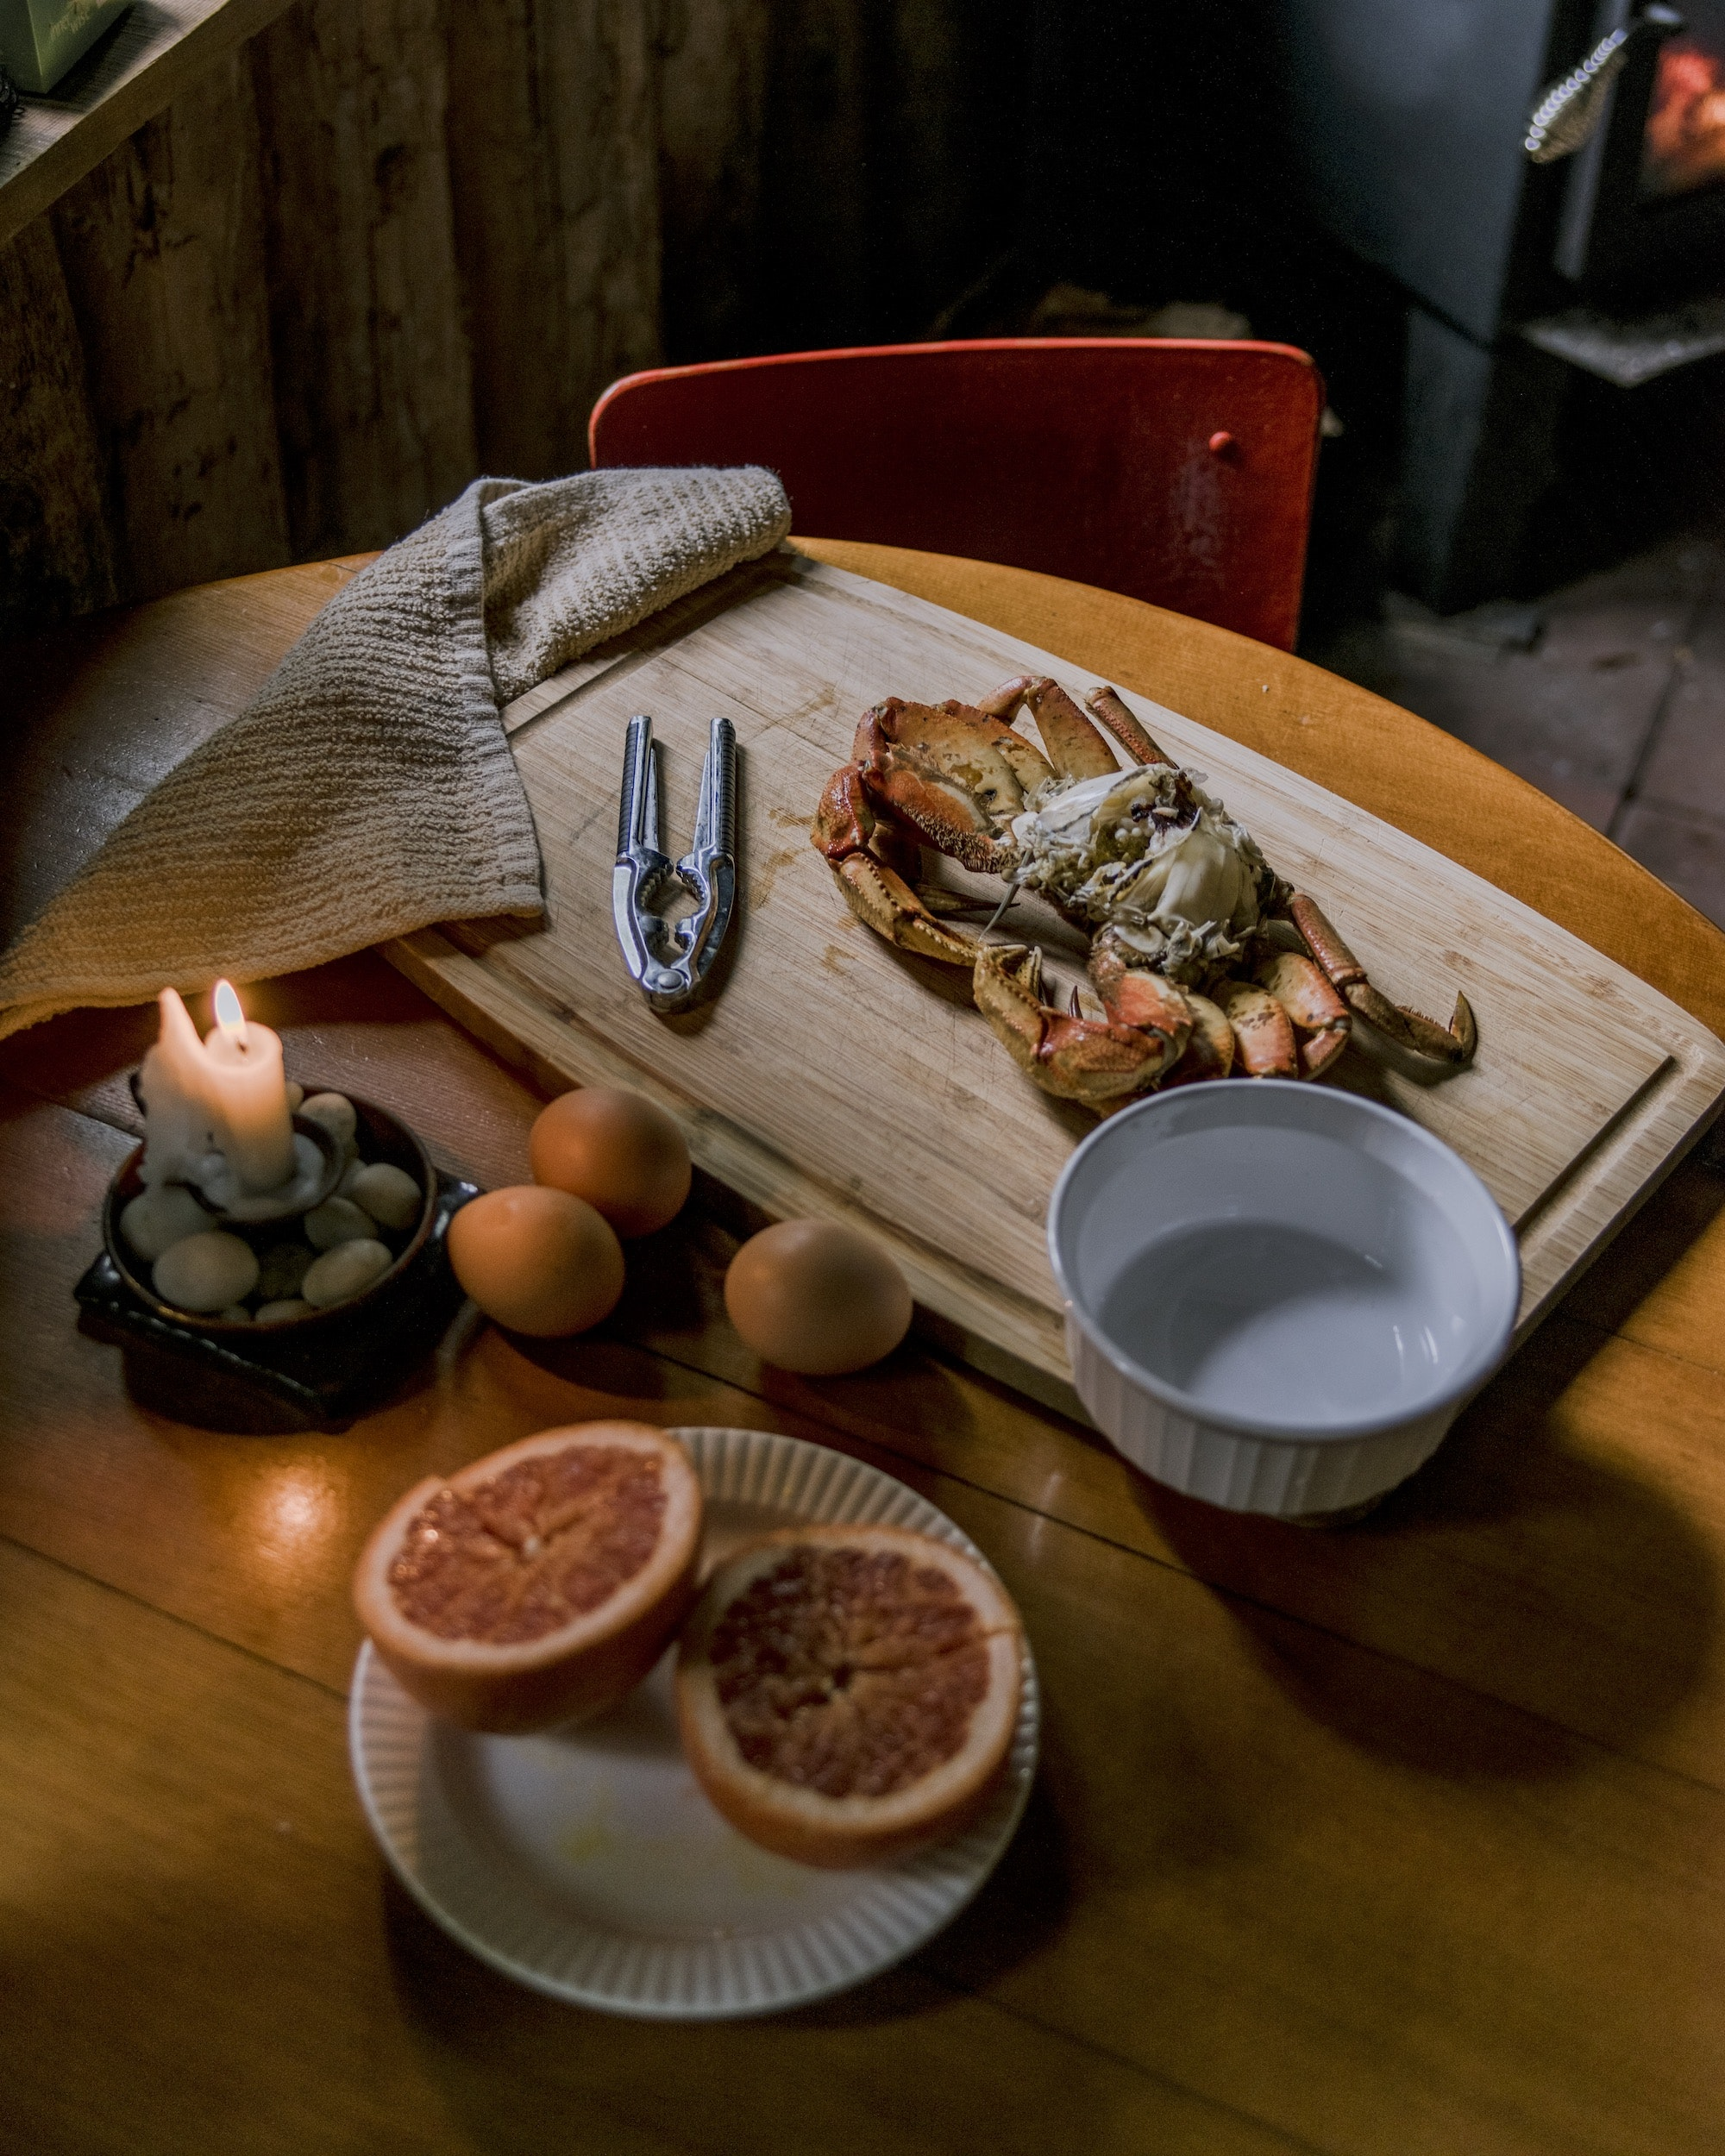 A meal of Dungeness crab at a home in the Haida village of Gaaw.